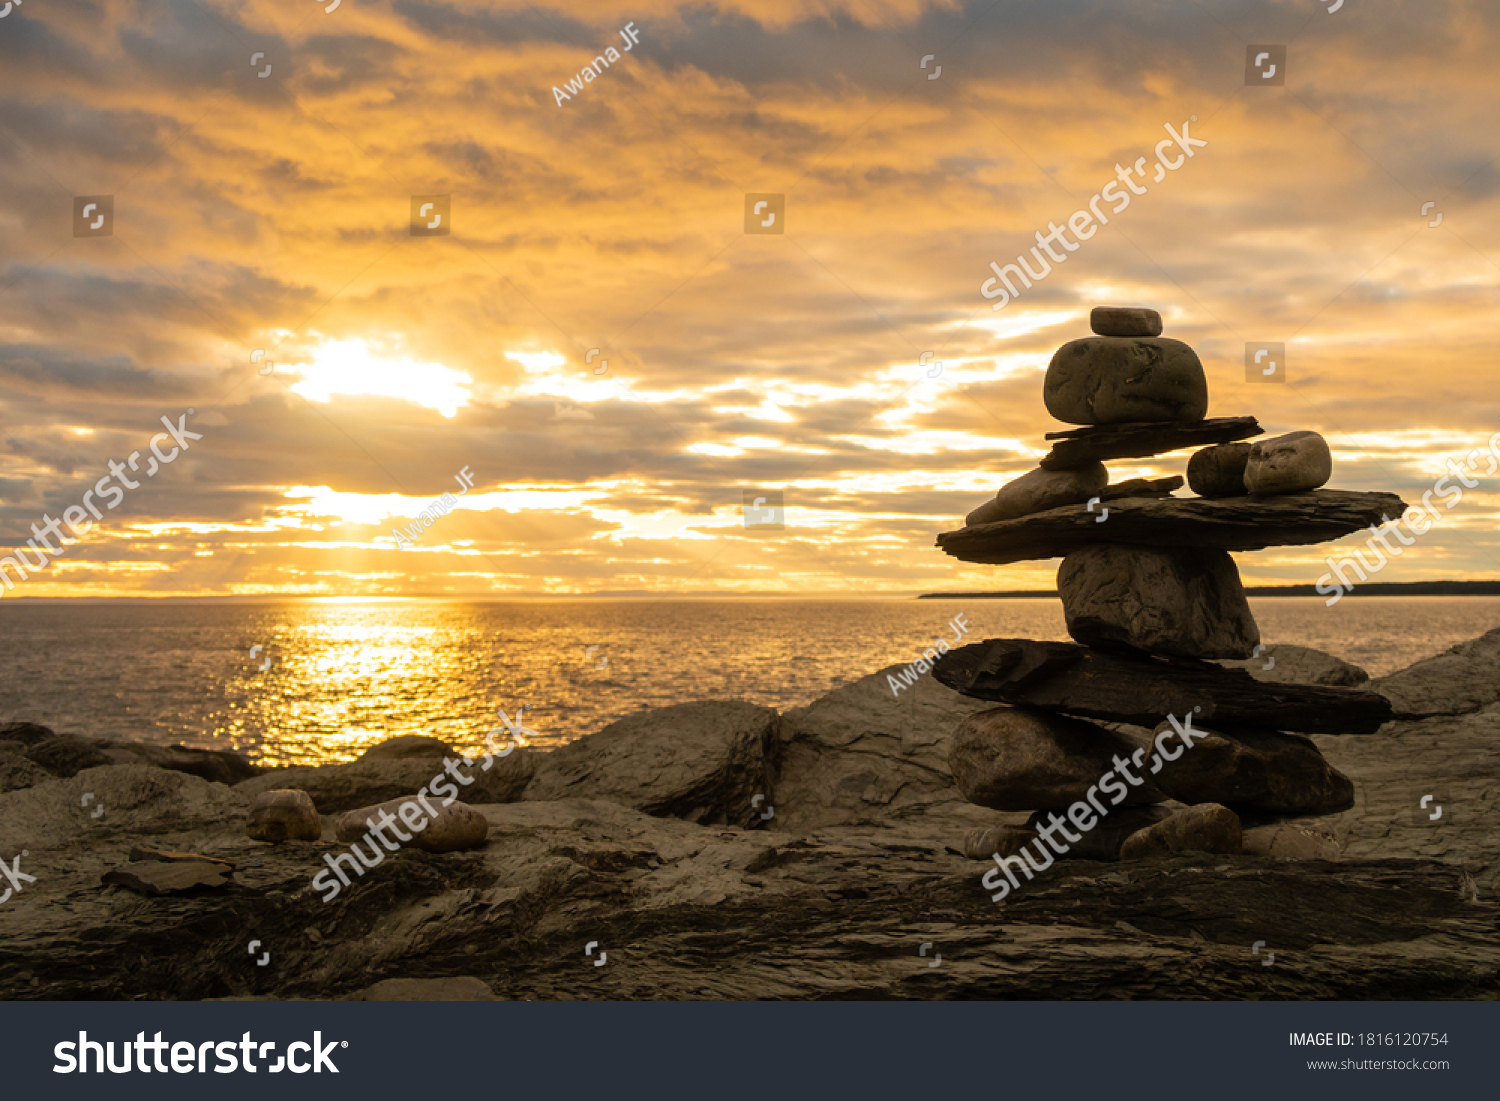 stock-photo-view-of-an-inukshuk-on-a-roc